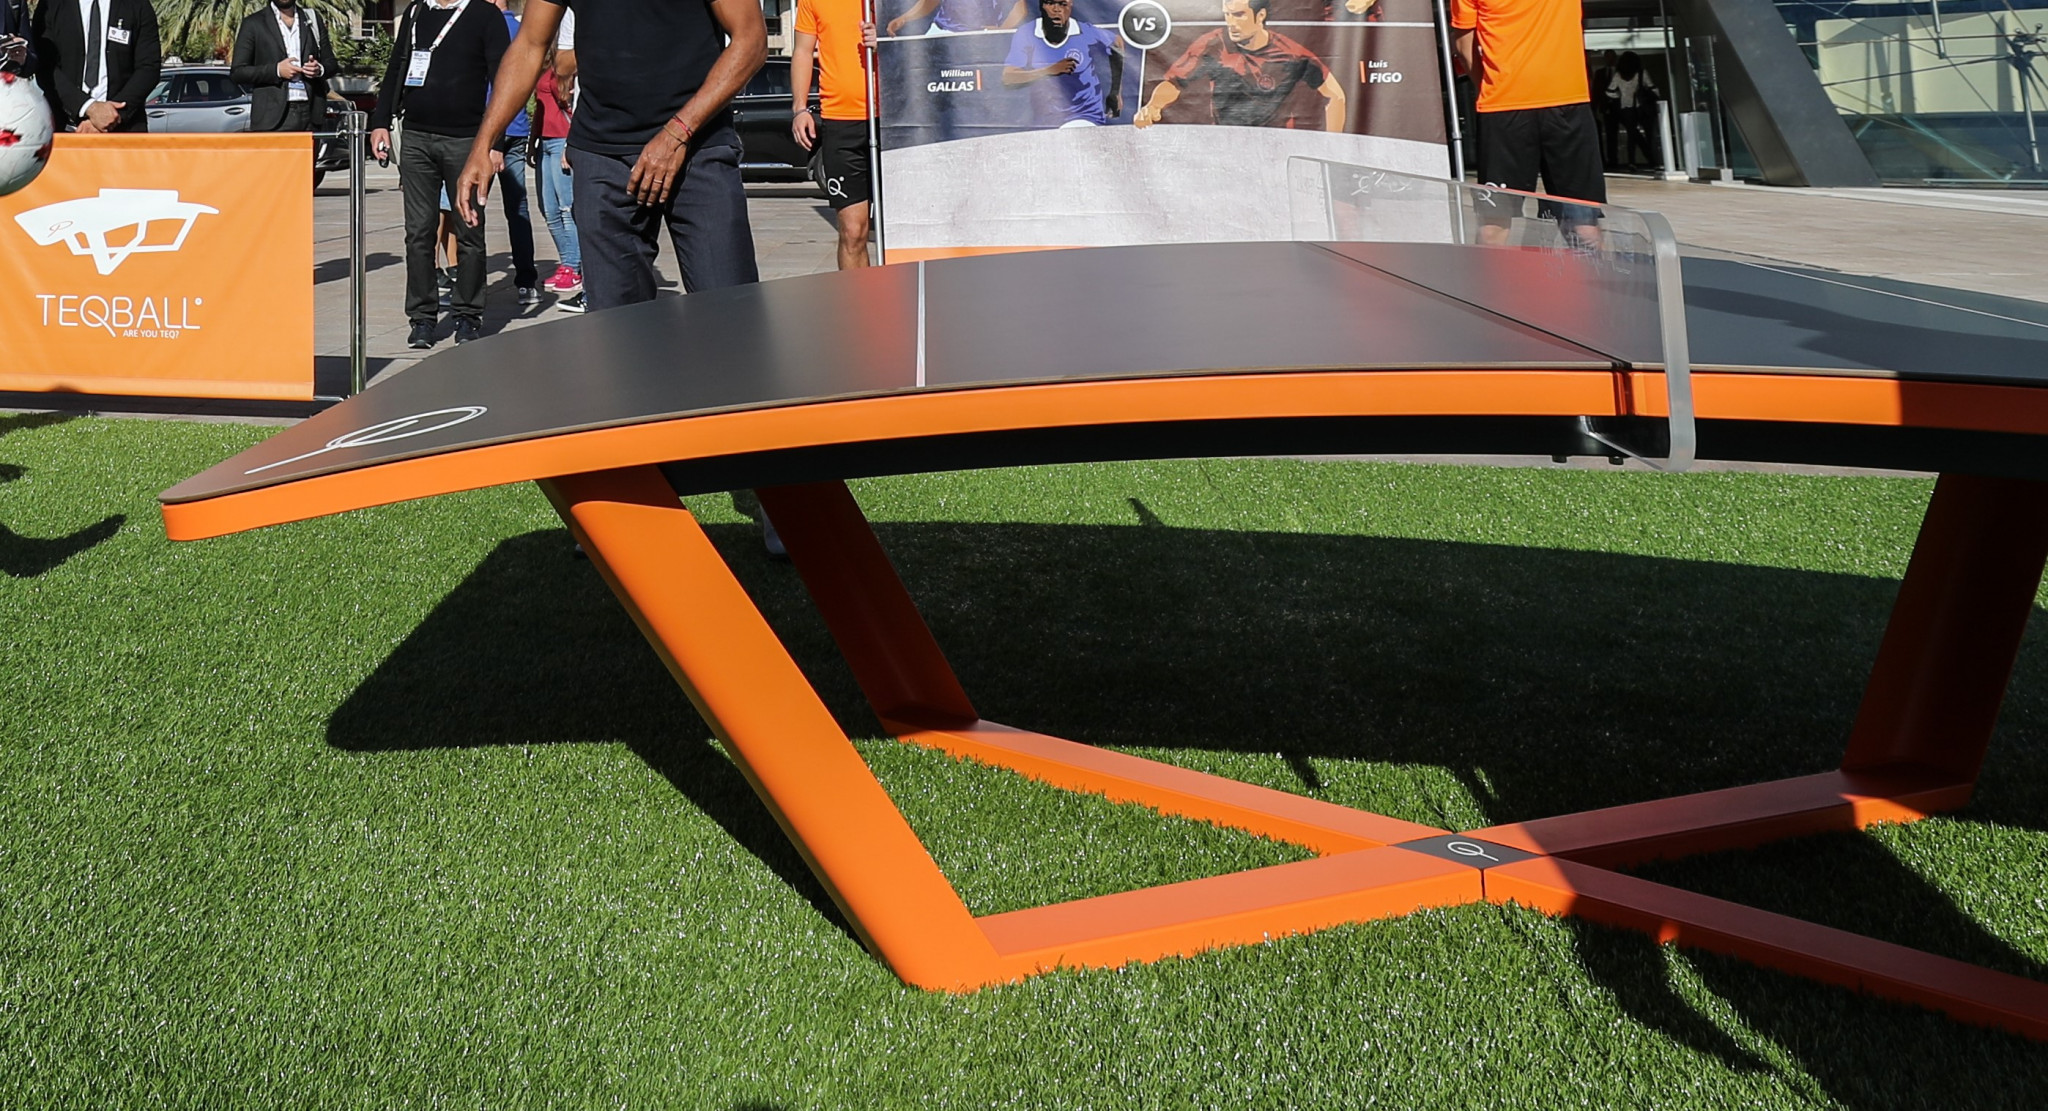 Hungarian Teqball Federation donates teq tables to anti-poverty charity